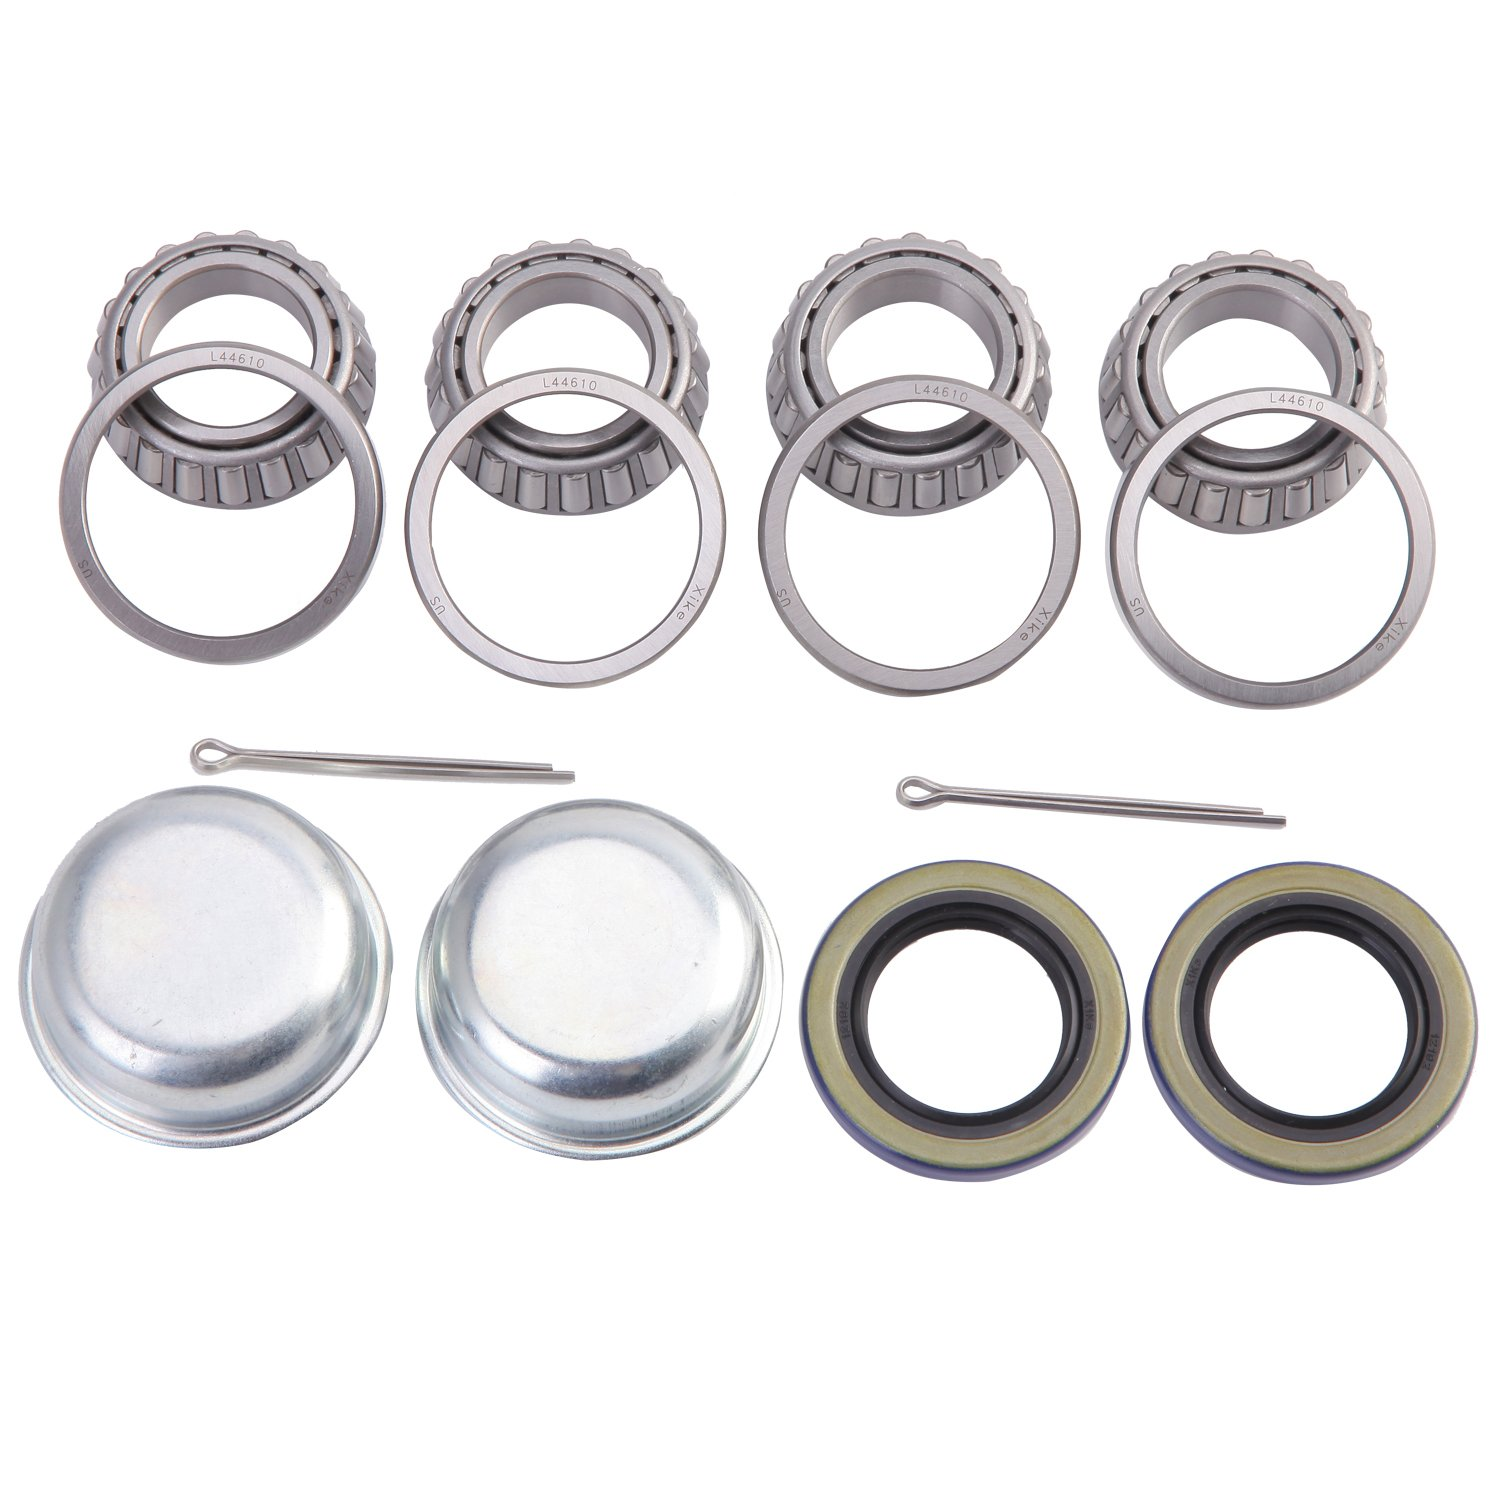 XiKe 2 Set Trailer Axle Hub Bearings Wheel Kit for Spindle 1-1/16'' or 1.062 Inch, Rotary Quiet High Speed and Durable. L44649/L44610, 12192TB Seal OD 1.980'', Dust Cover and Cotter Pin.